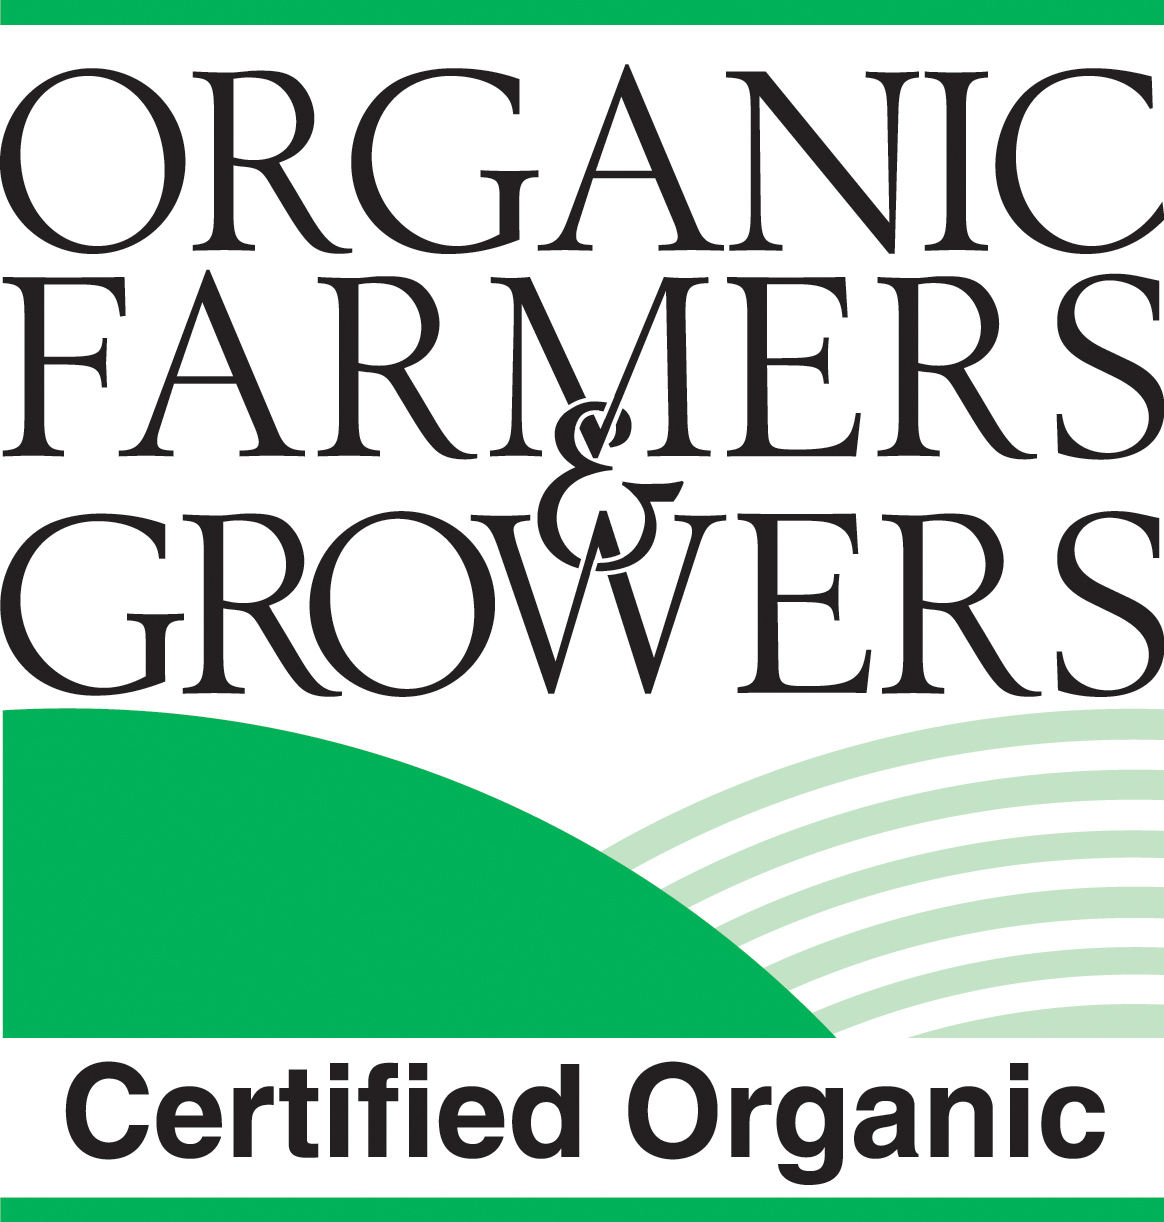 Certified Organic product